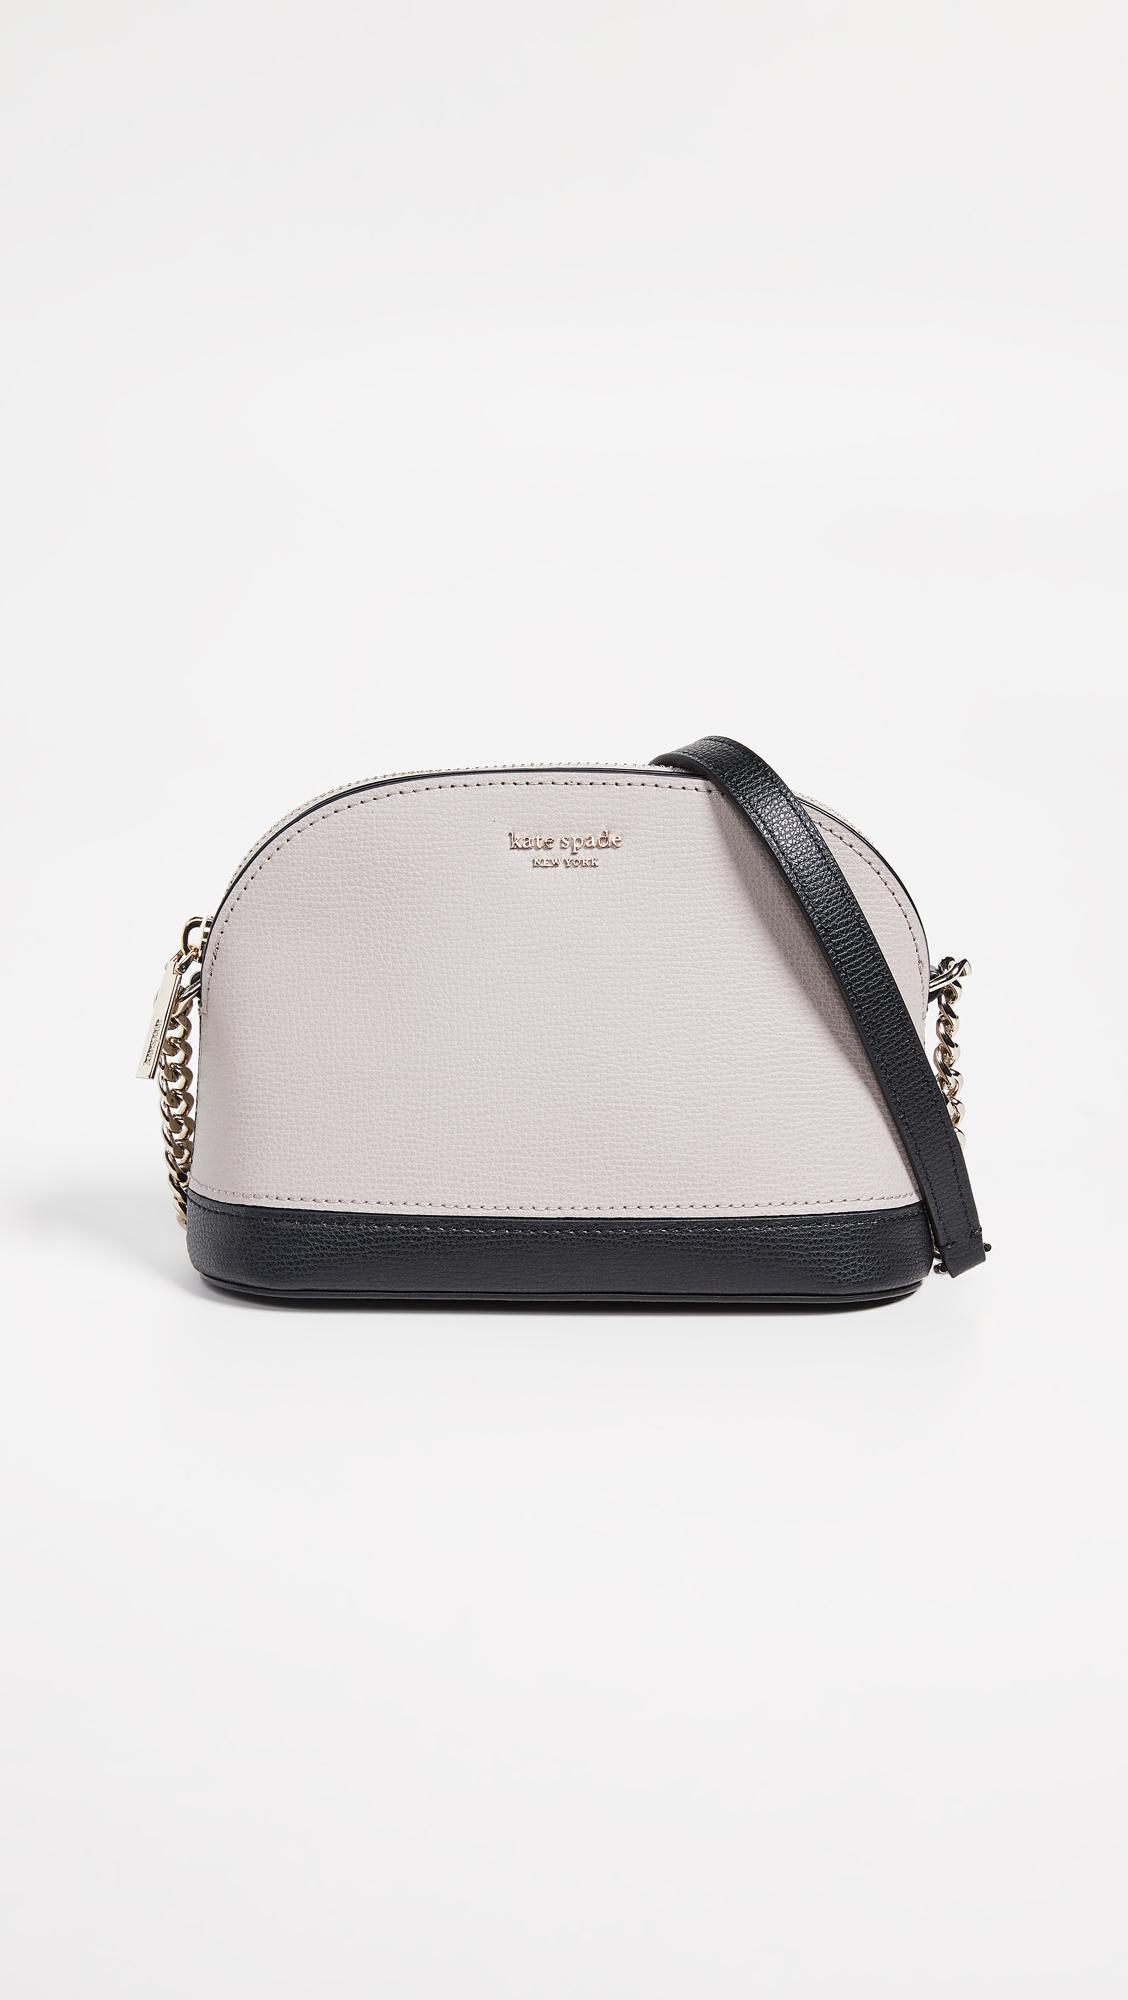 cd6f0df0fe3 Women's Black Sylvia Small Dome Crossbody Bag